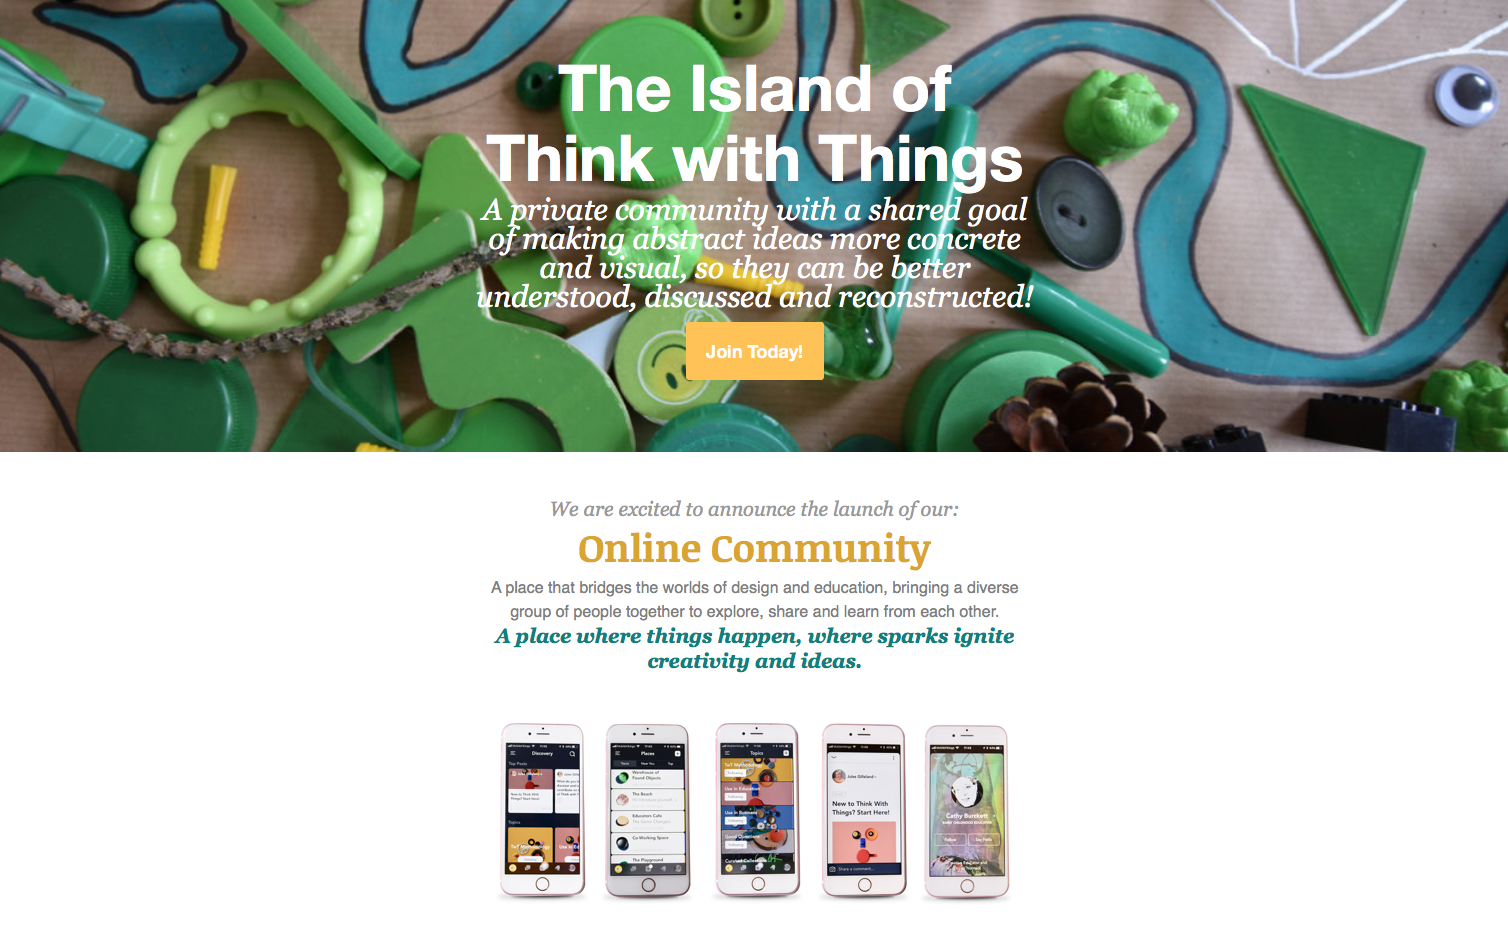 Think with Things online learning platform